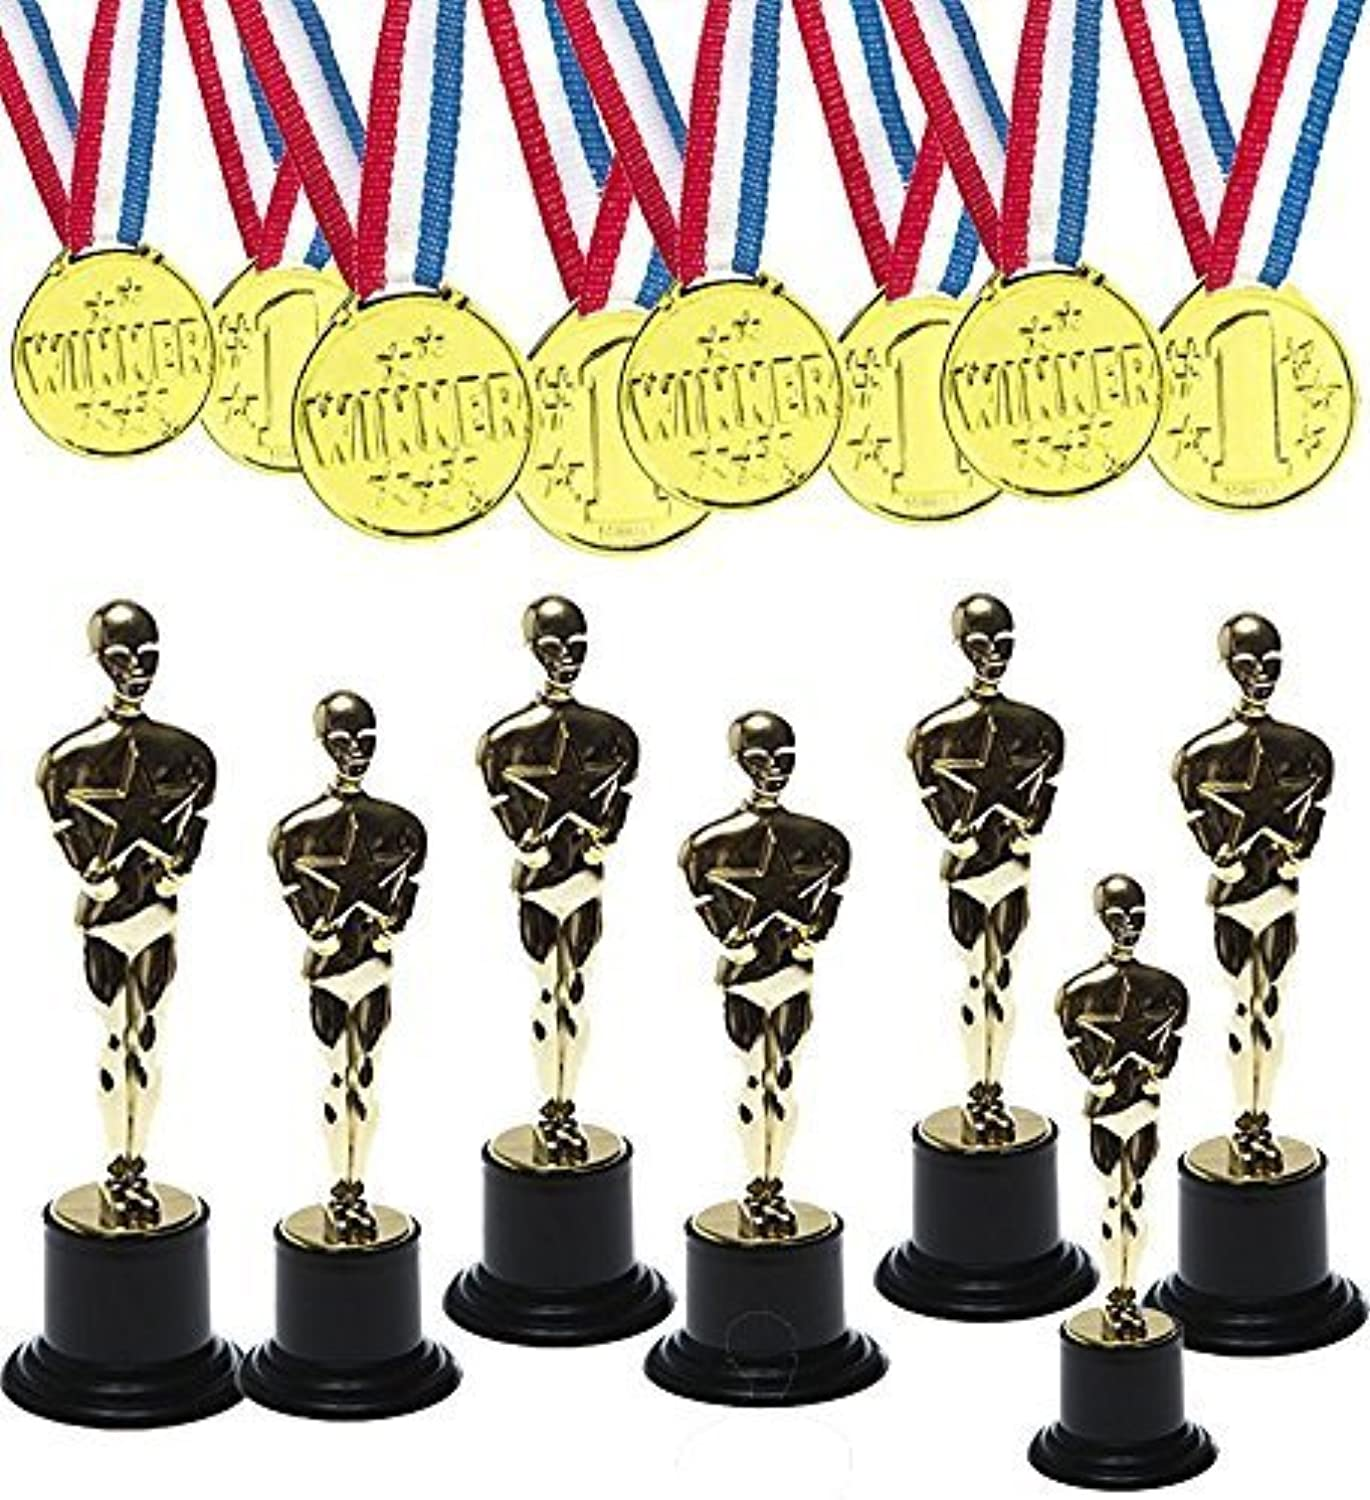 mas barato oro Award Trophy with oro Winner Winner Winner Medals for Award Ceremony's or Party (12 Pack) by FunnyPartyHats  Envío y cambio gratis.